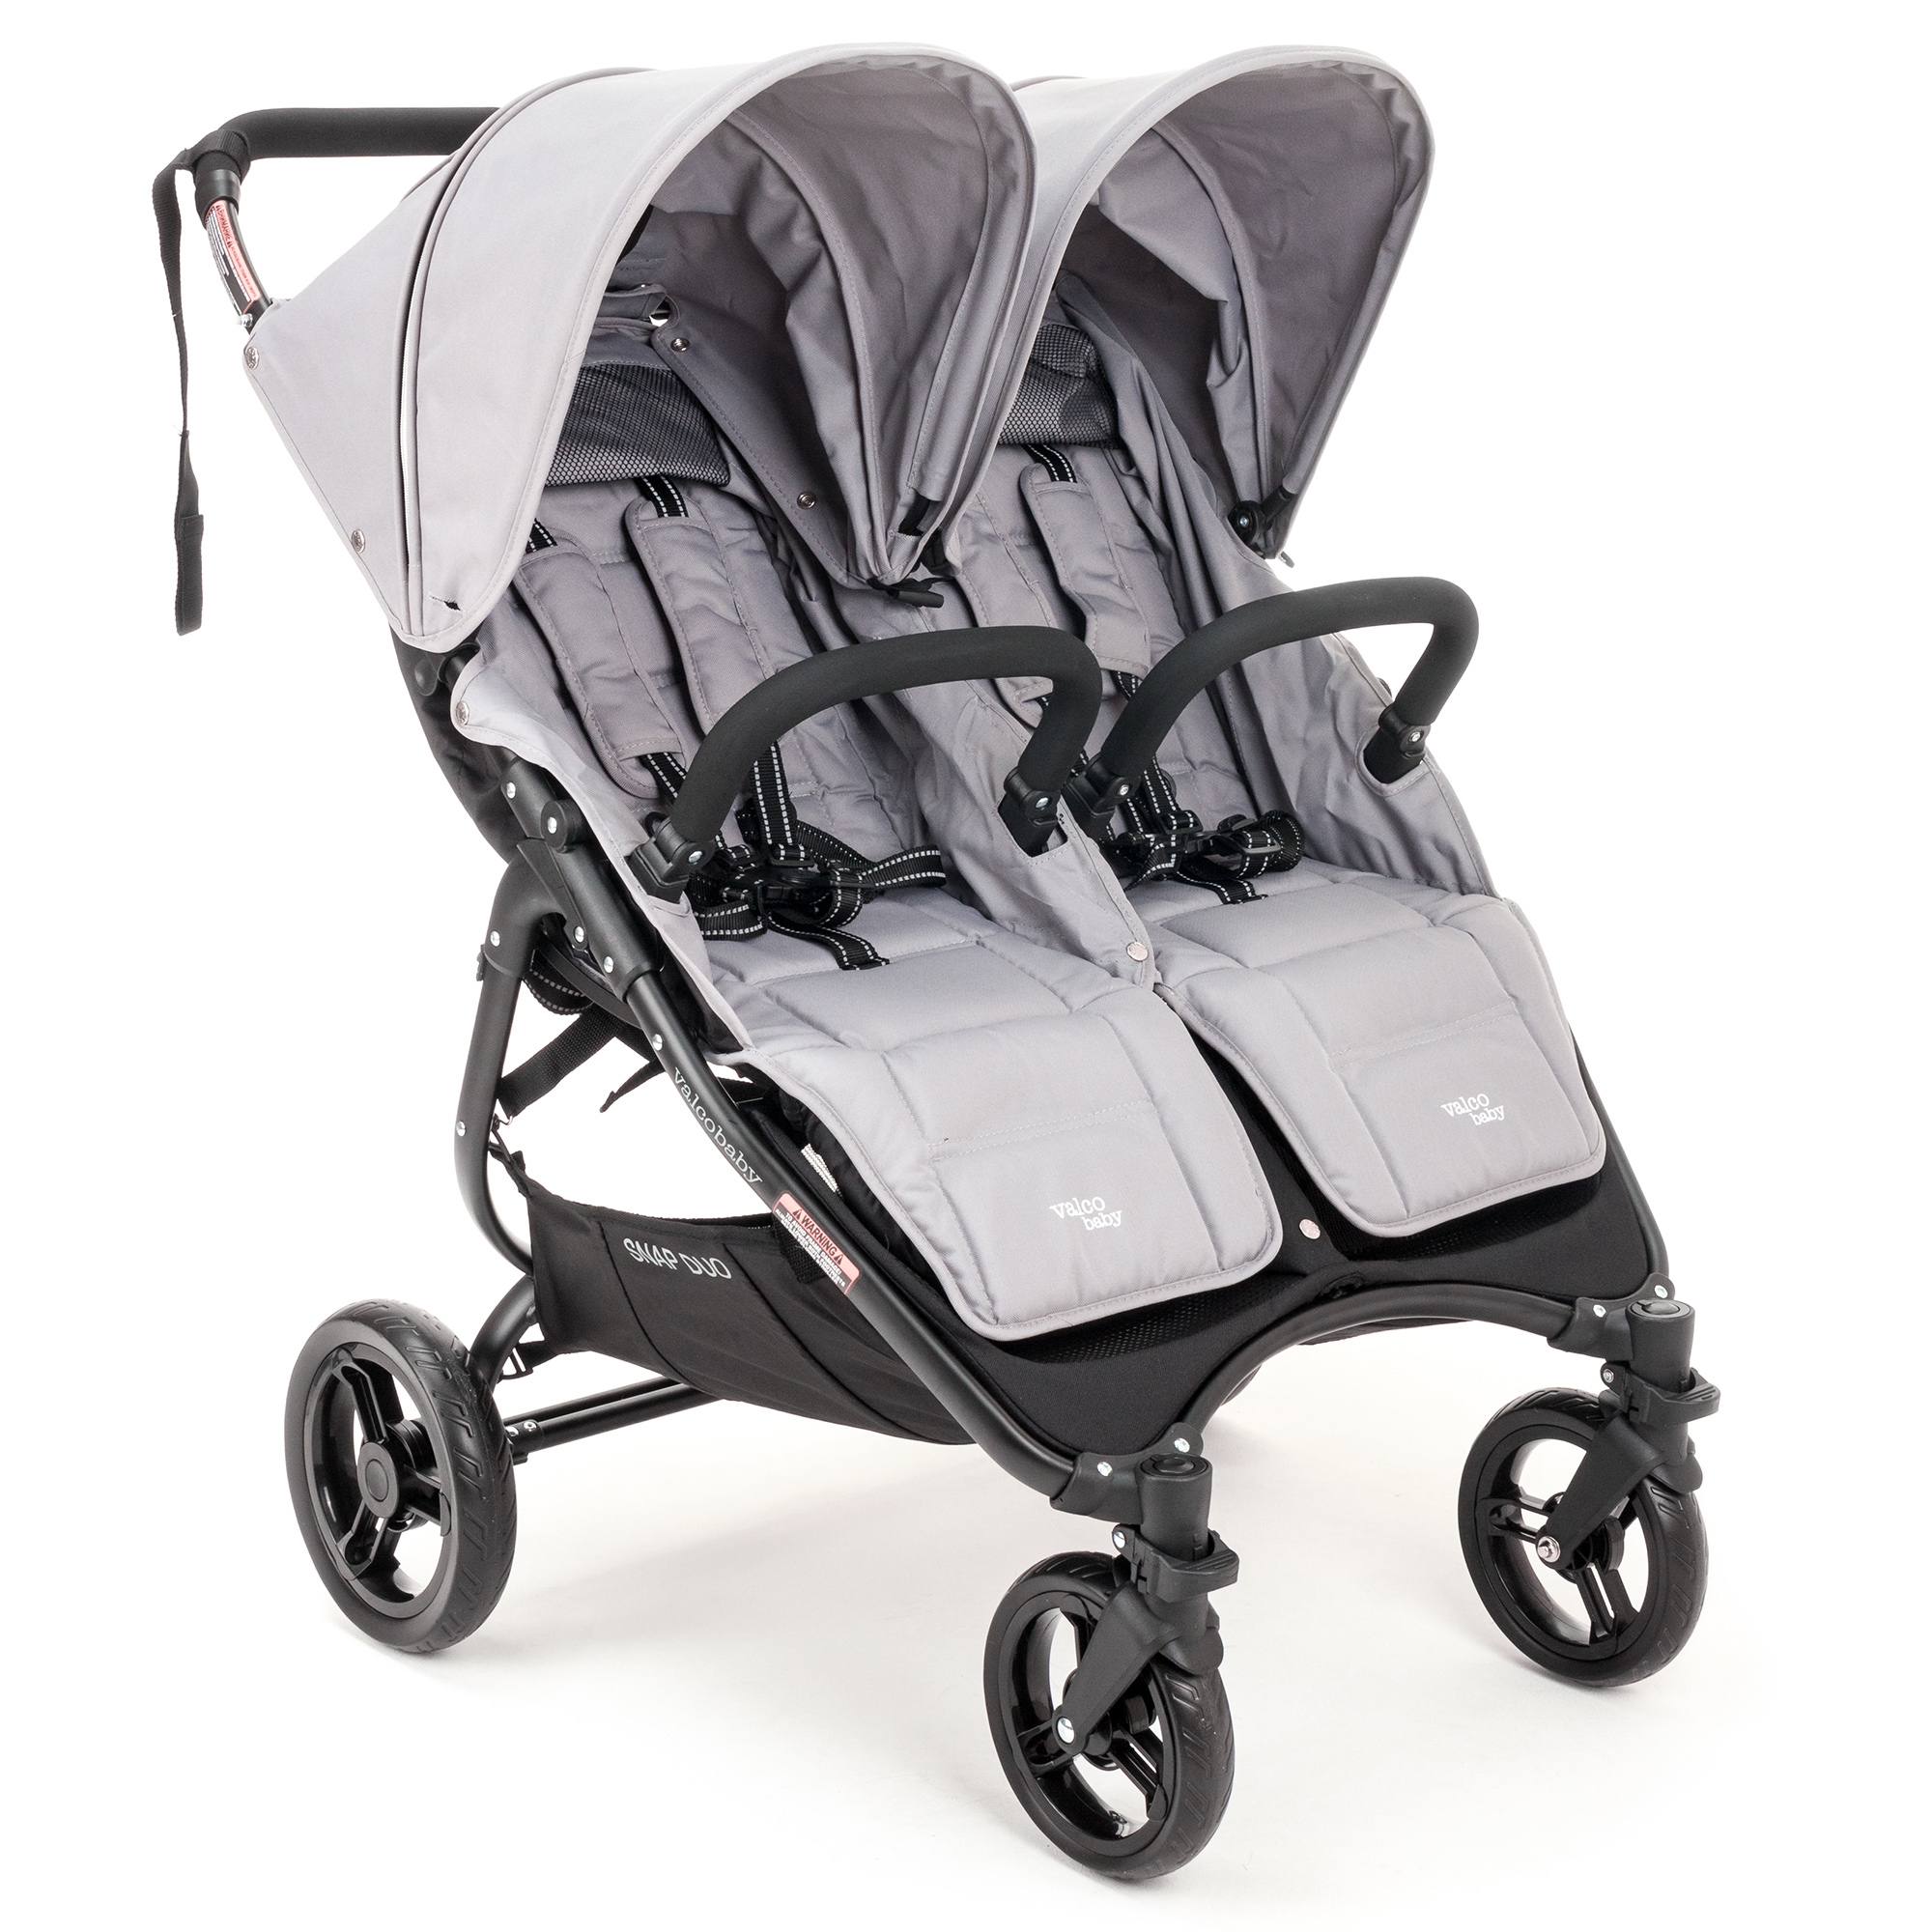 Коляска для двойни Valco baby Snap Duo Cool Grey, серыйКоляски-книжка<br>Коляска для двойни Valco baby Snap Duo Cool Grey, серый